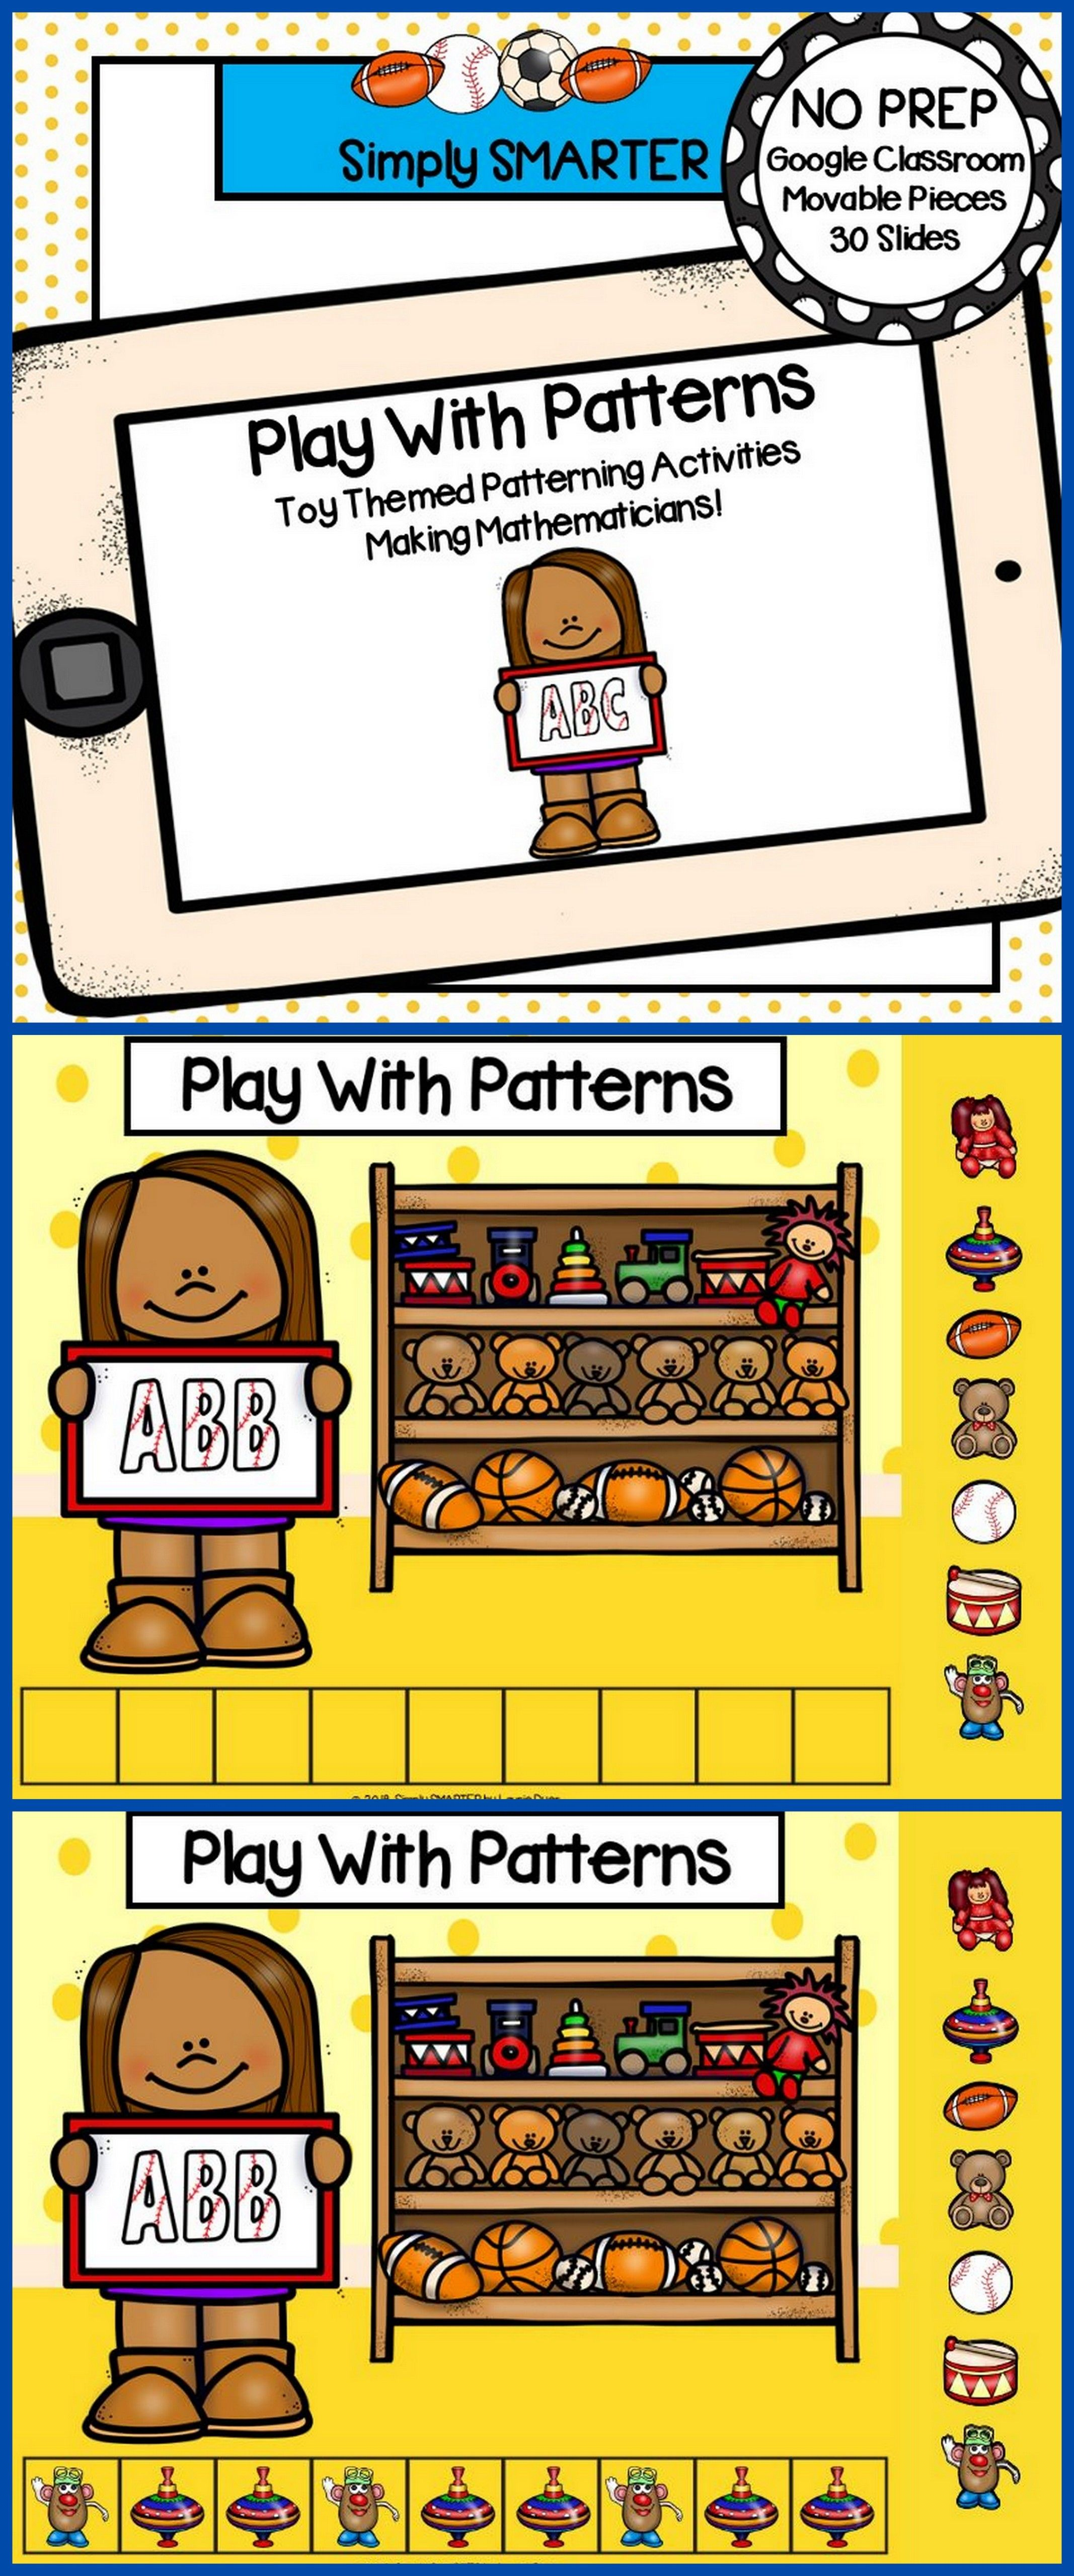 Toy Themed Patterning Math Activities For Classroom